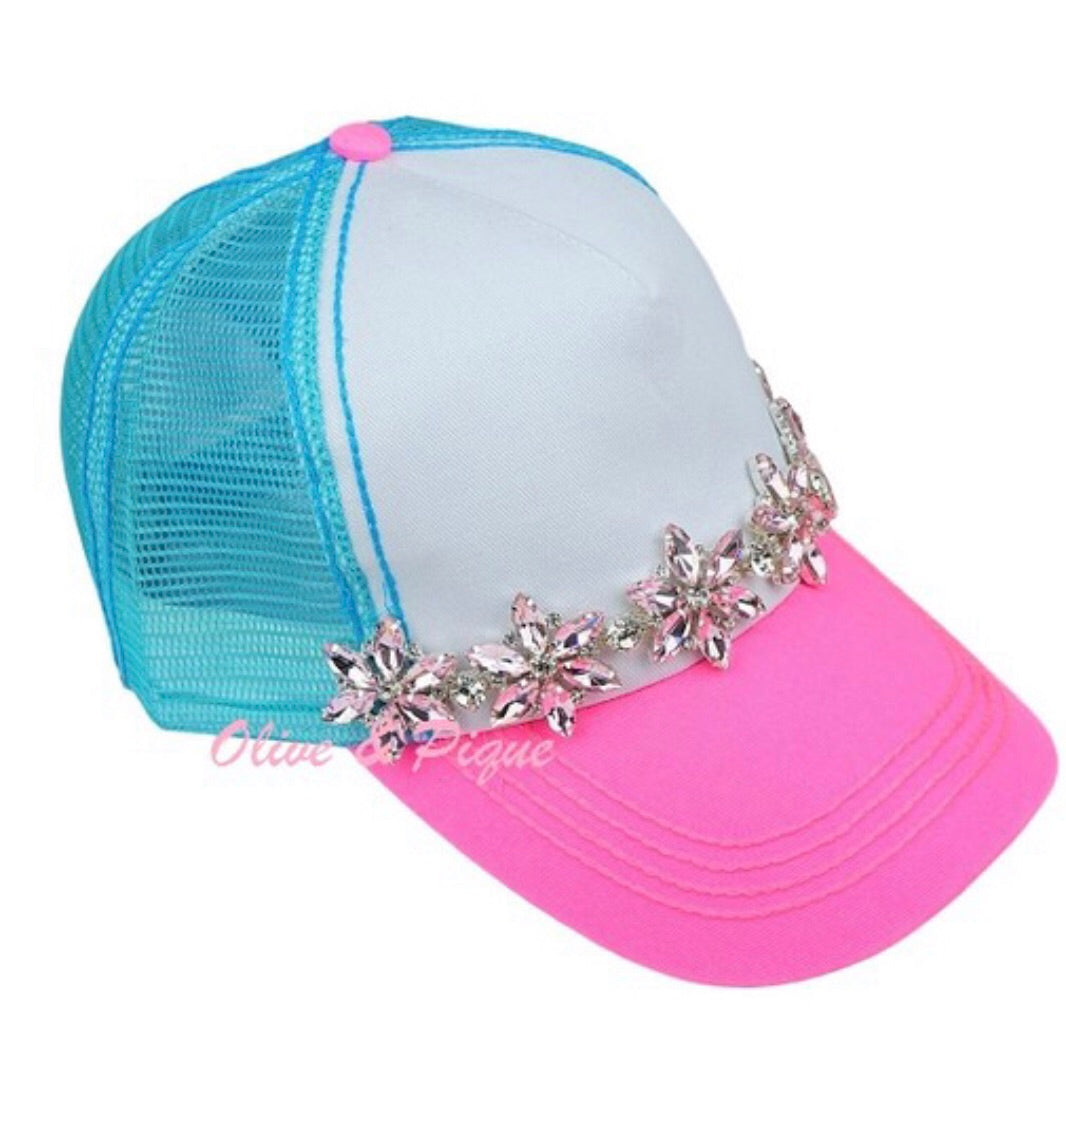 Pink and Turquoise Trucker Hat with Rhinestones